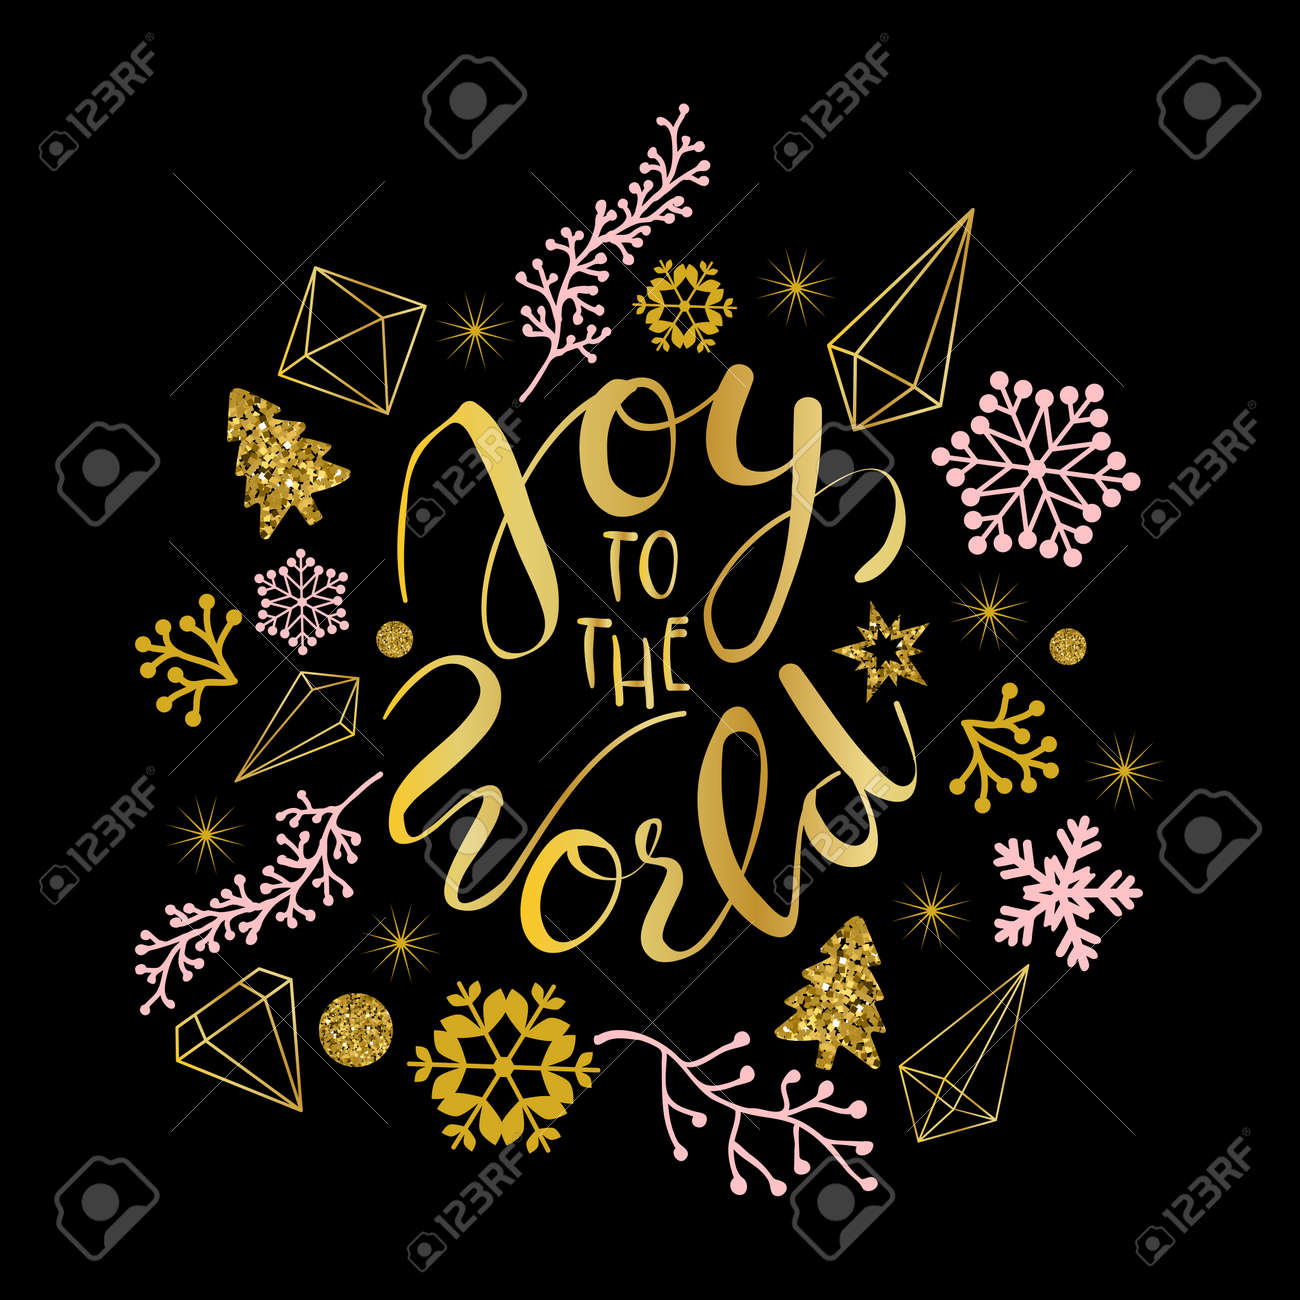 Joy to the world greetings in calligraphic type illustration joy to the world greetings in calligraphic type illustration banco de imagens 84949396 kristyandbryce Gallery